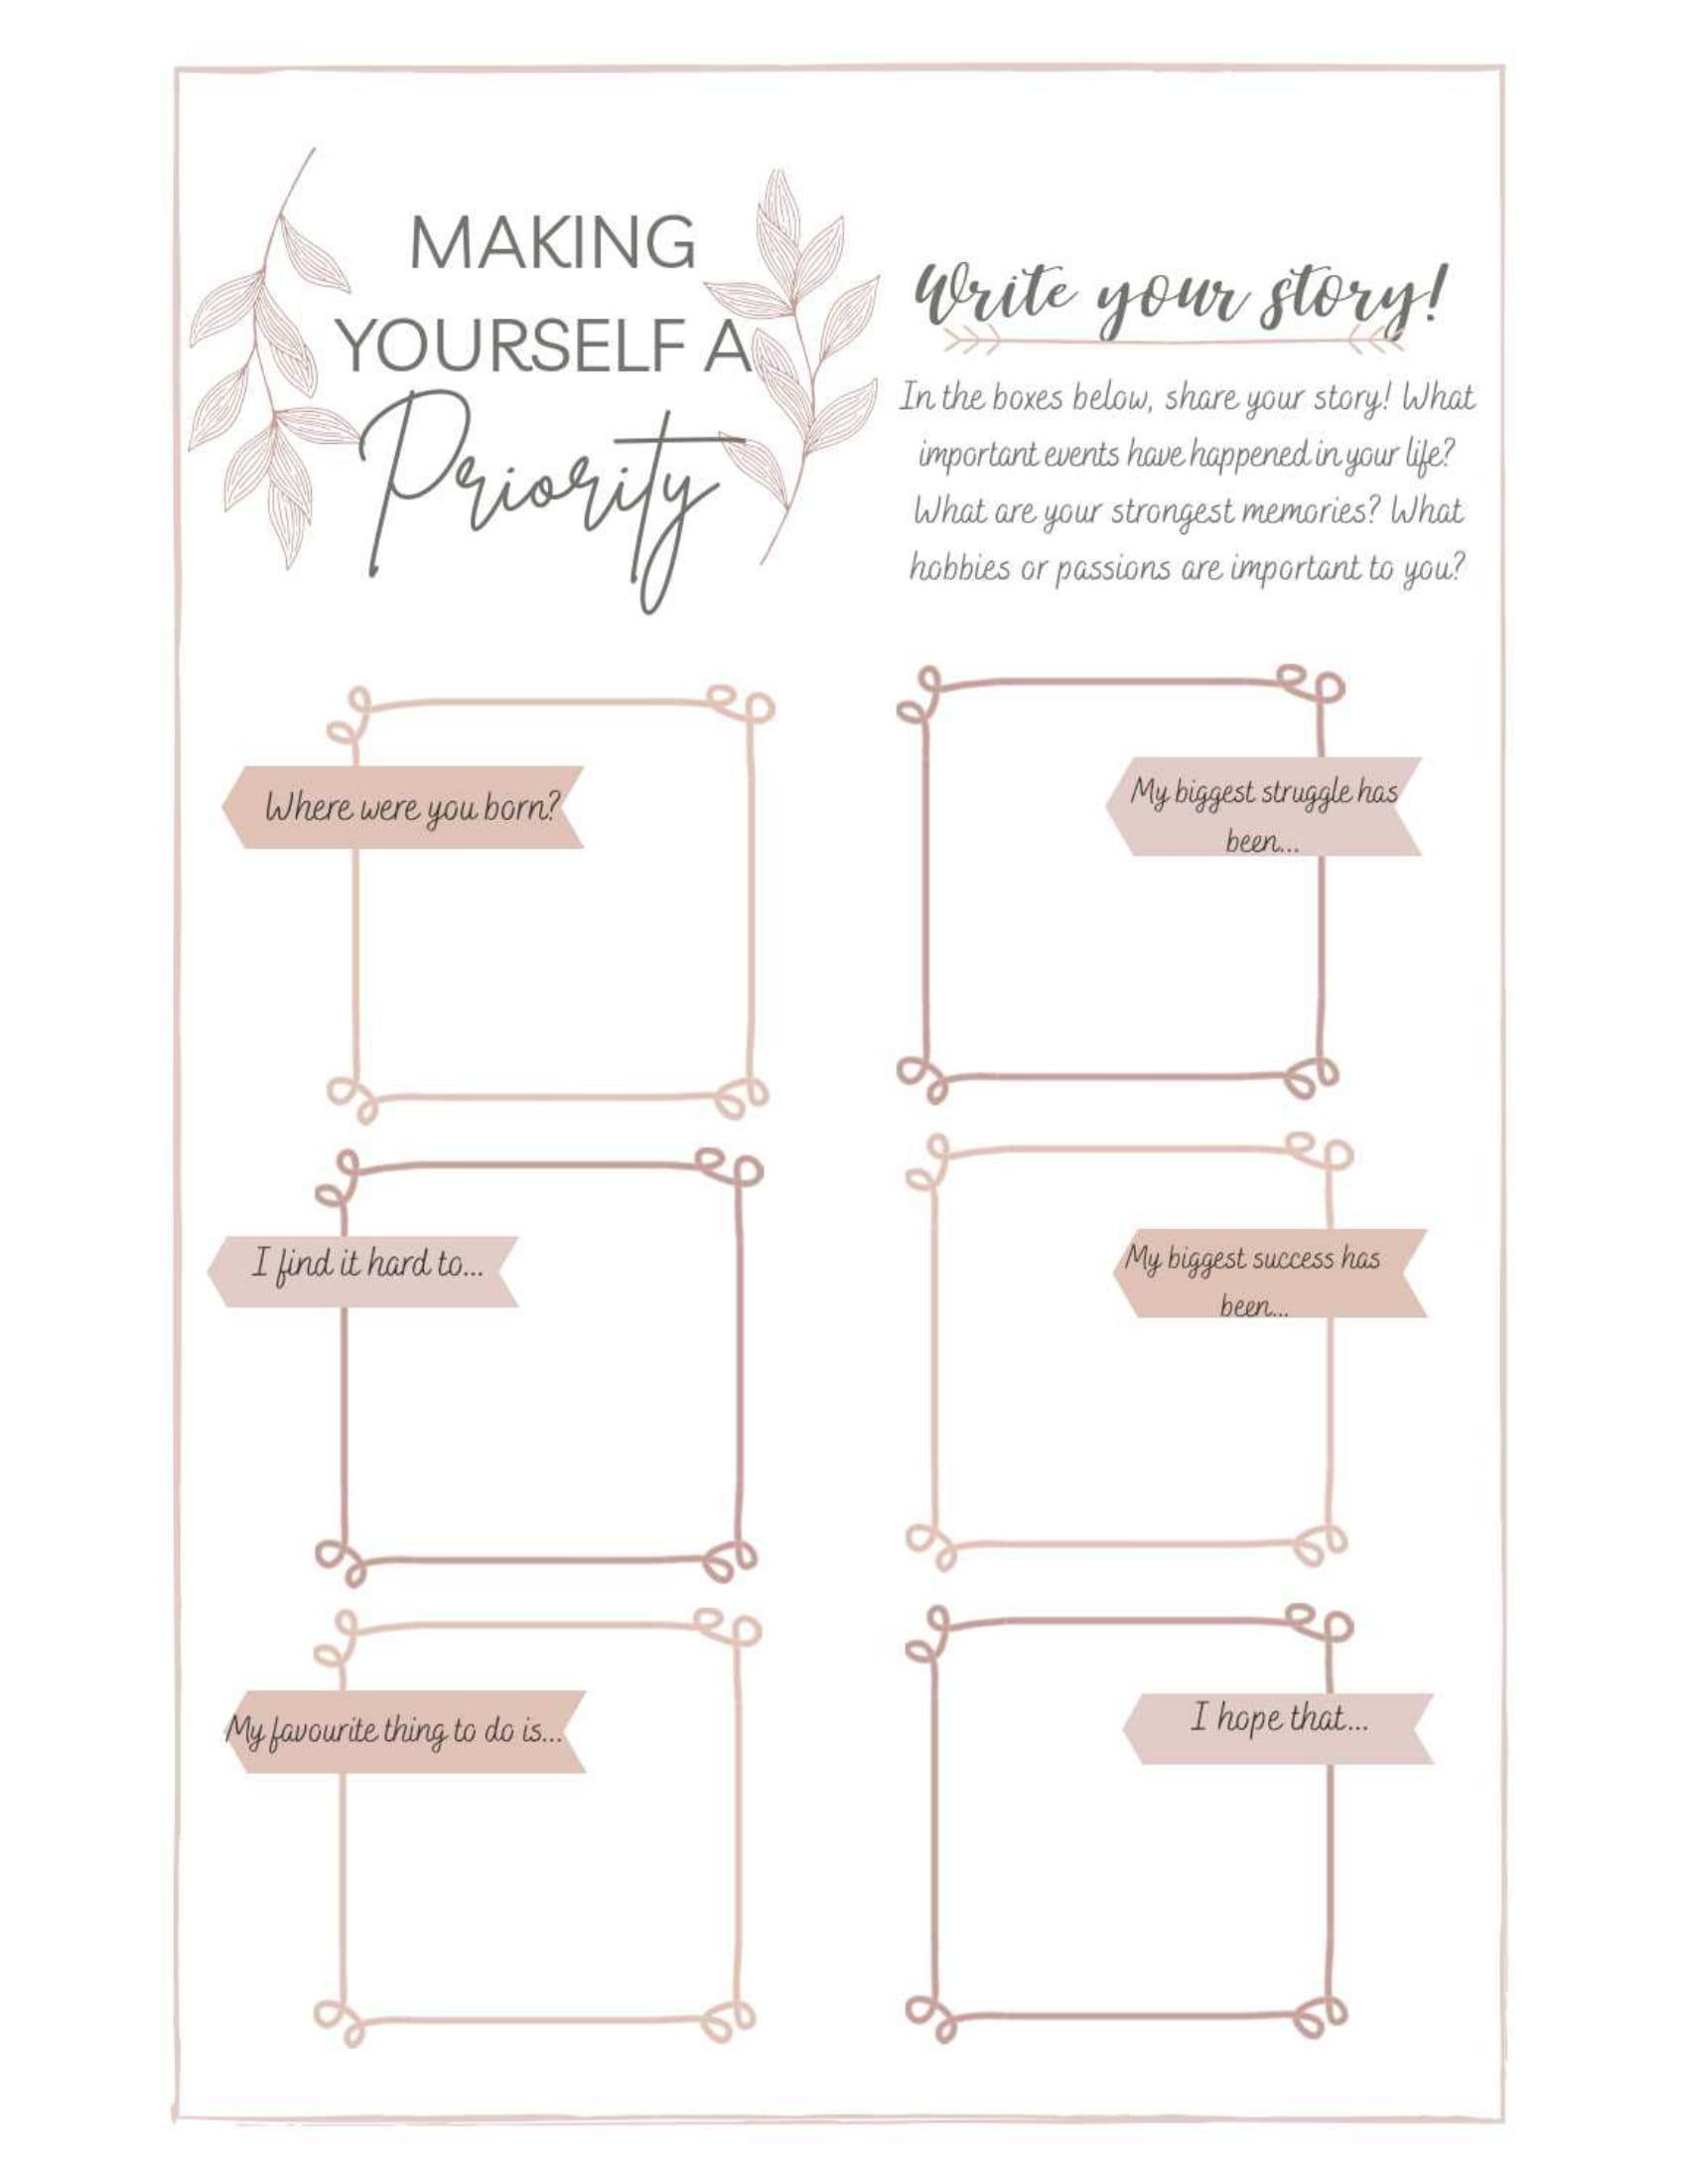 Making Yourself a Priority